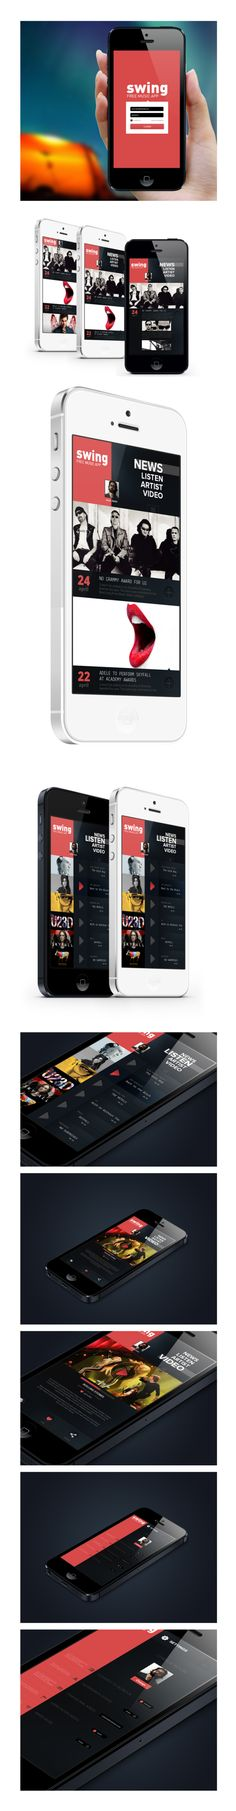 #iphone Music #App Concept by Enes Danış, via #Behance #UI #Mobile